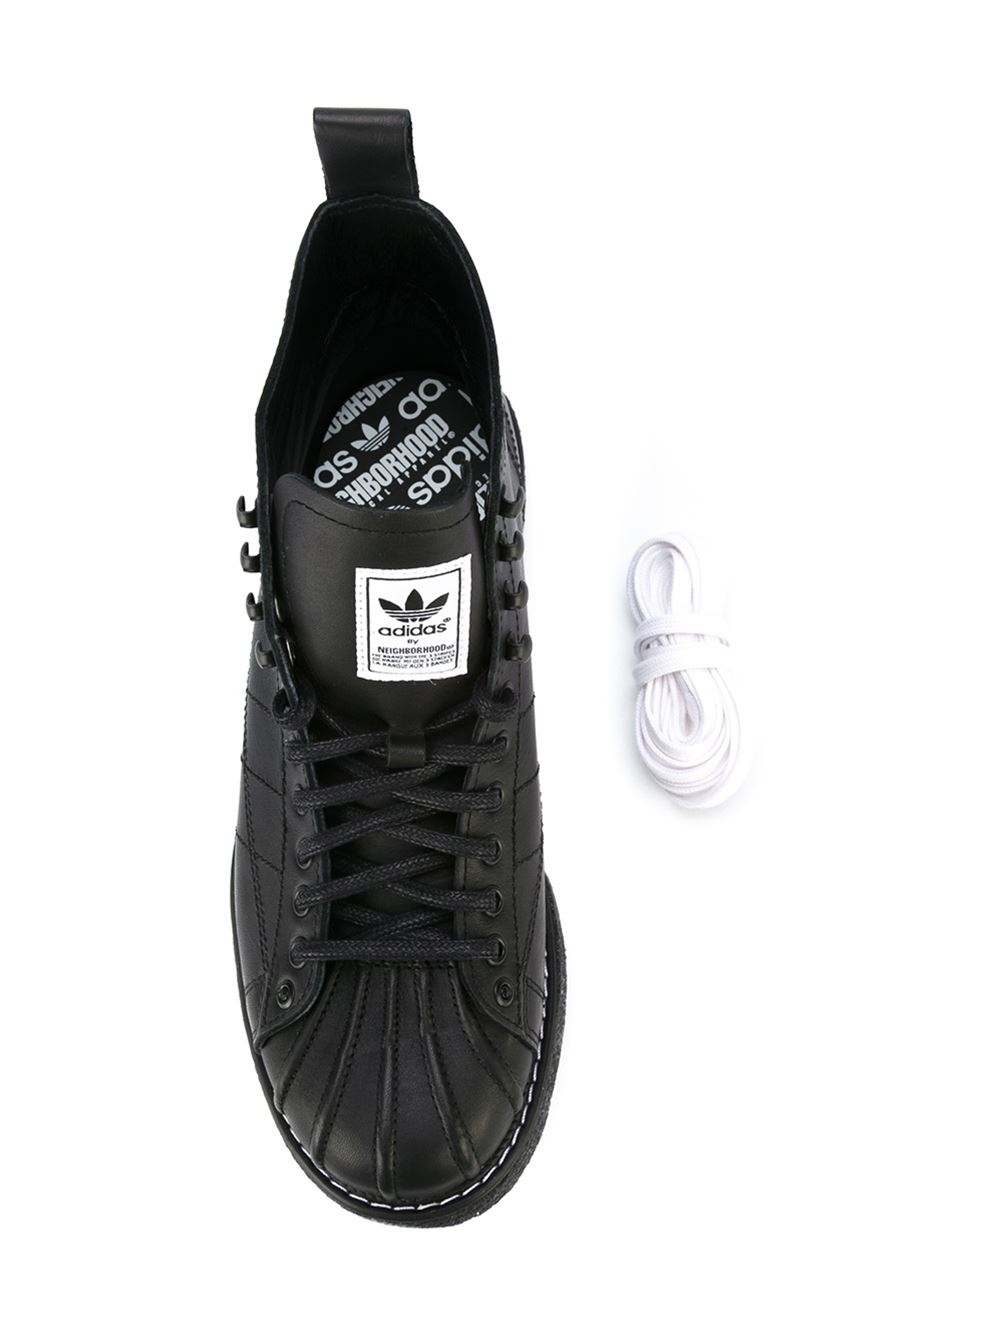 Black Lace-Up Leather High-Top Sneakers